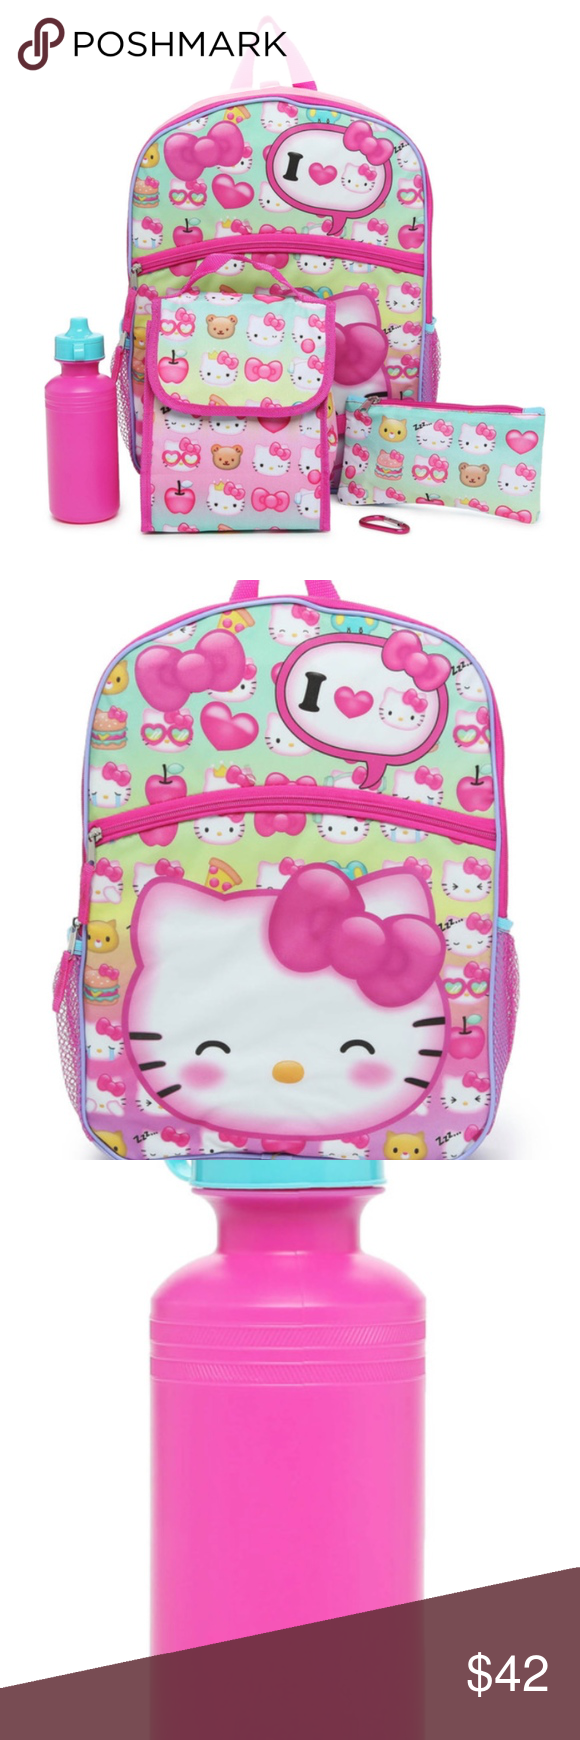 88e01ae16 Hello Kitty 5-Piece Set Includes Backpack+ 5-piece set includes backpack,  lunch bag, pencil case, water bottle, and carabiner Features Hello Kitty  graphics ...